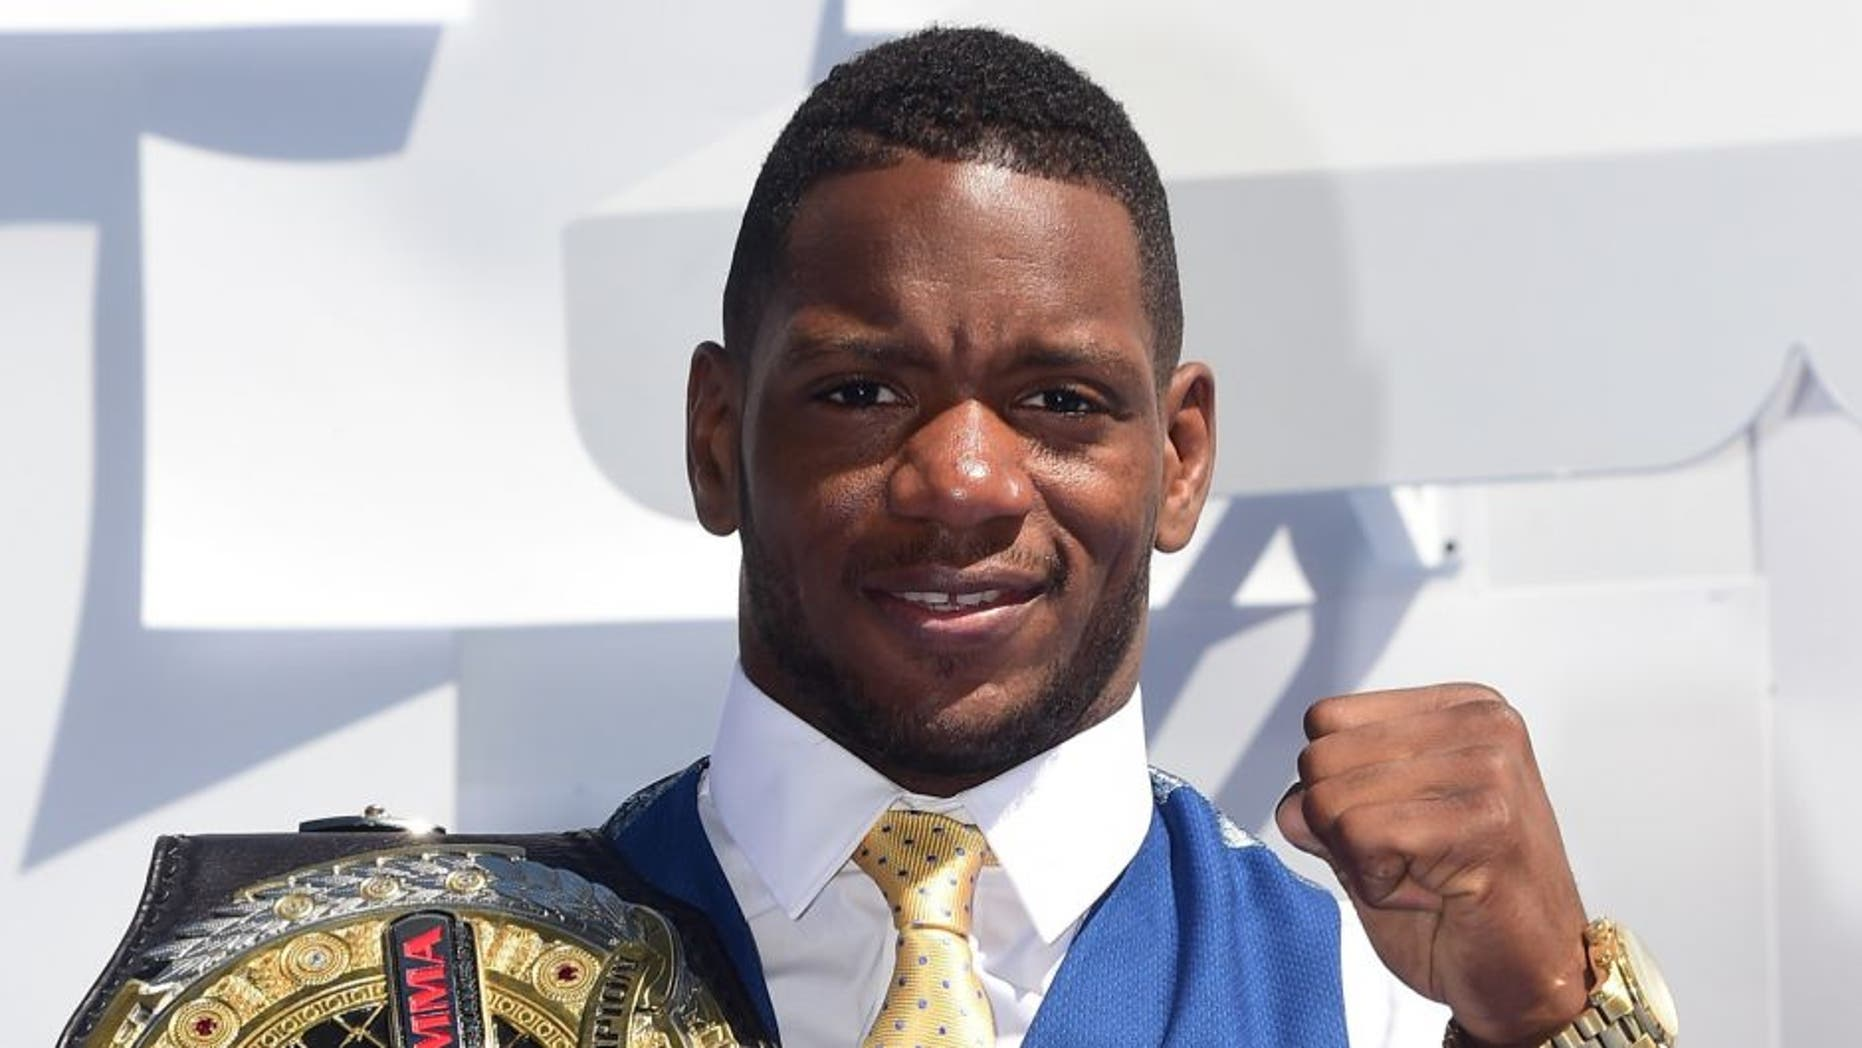 Mixed martial artist Will Brooks poses on arrival for the 2015 MTV Movie Awards on April 12, 2015 in Los Angeles, California. AFP PHOTO / FREDERIC J. BROWN (Photo credit should read FREDERIC J. BROWN/AFP/Getty Images)